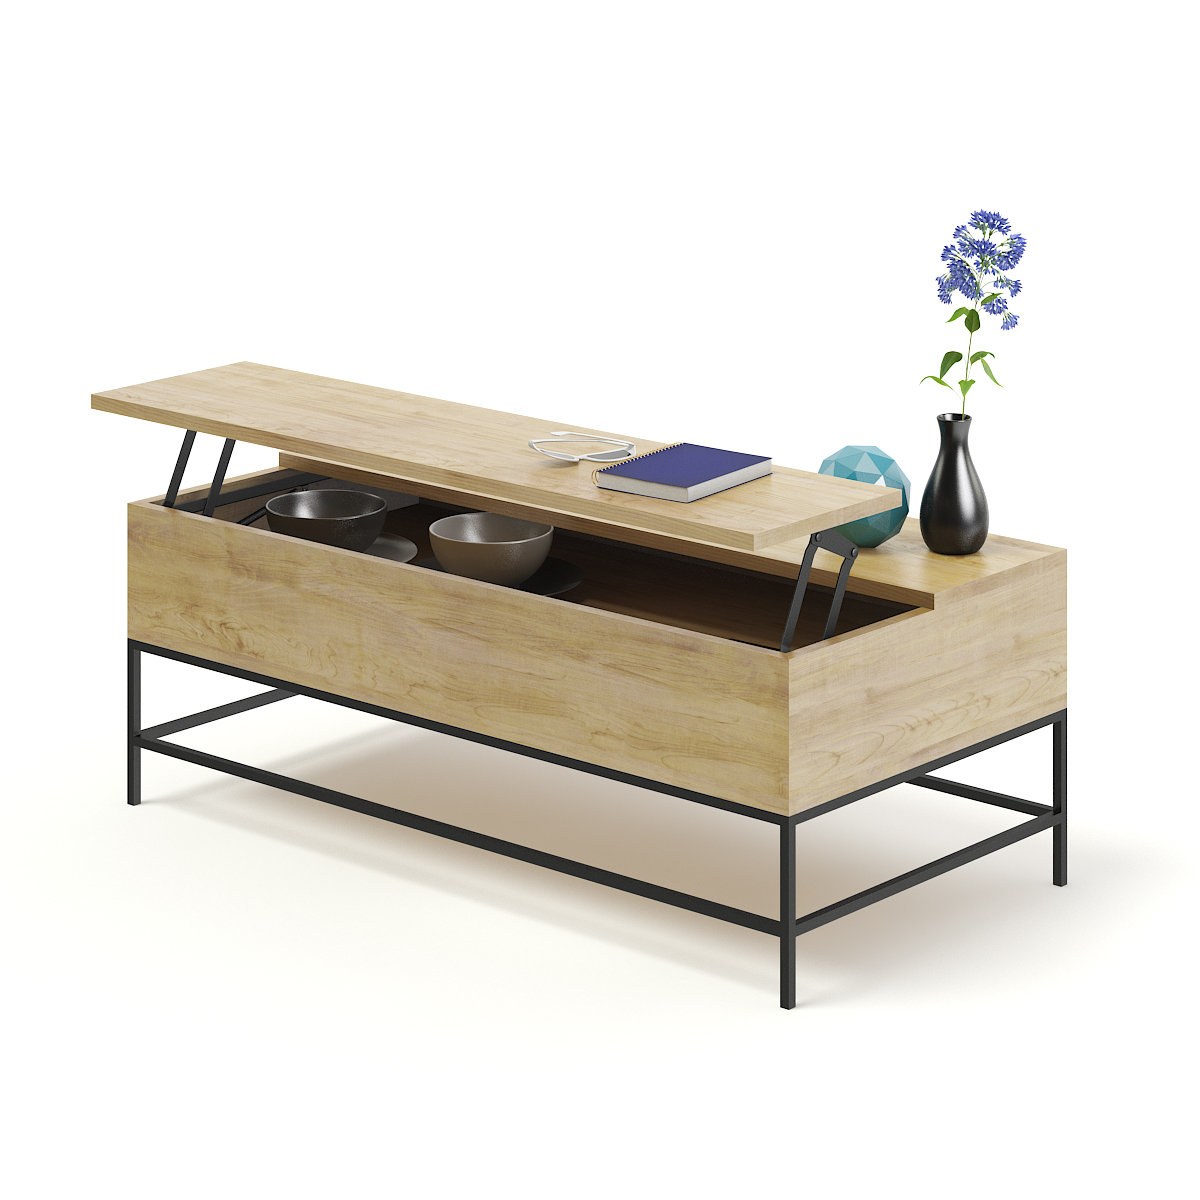 Opened Wooden Coffee Table Model